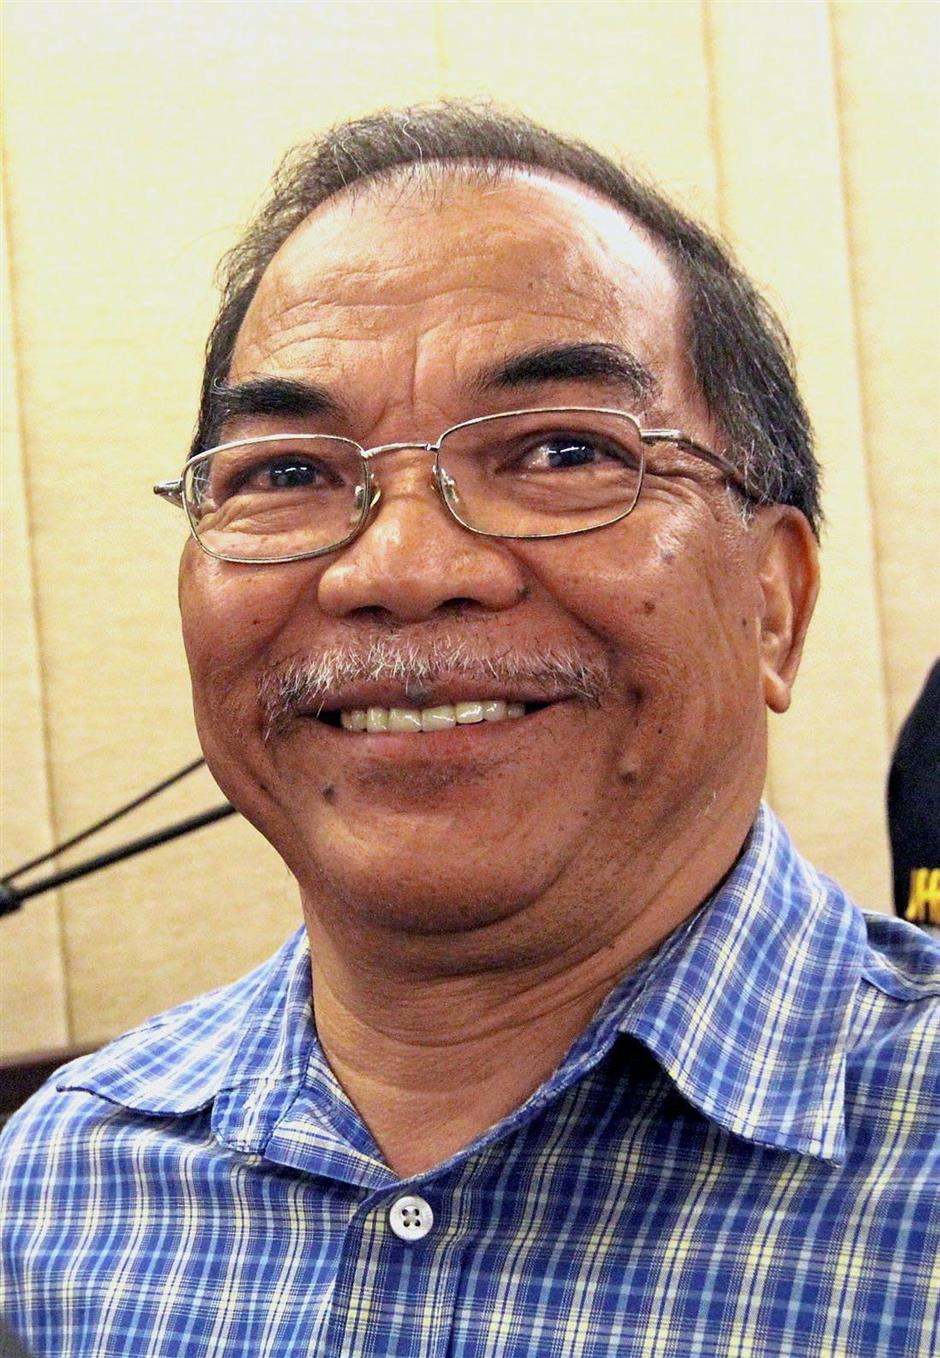 Opposition top man: Fauzi is PKR's choice to become the mentri besar.